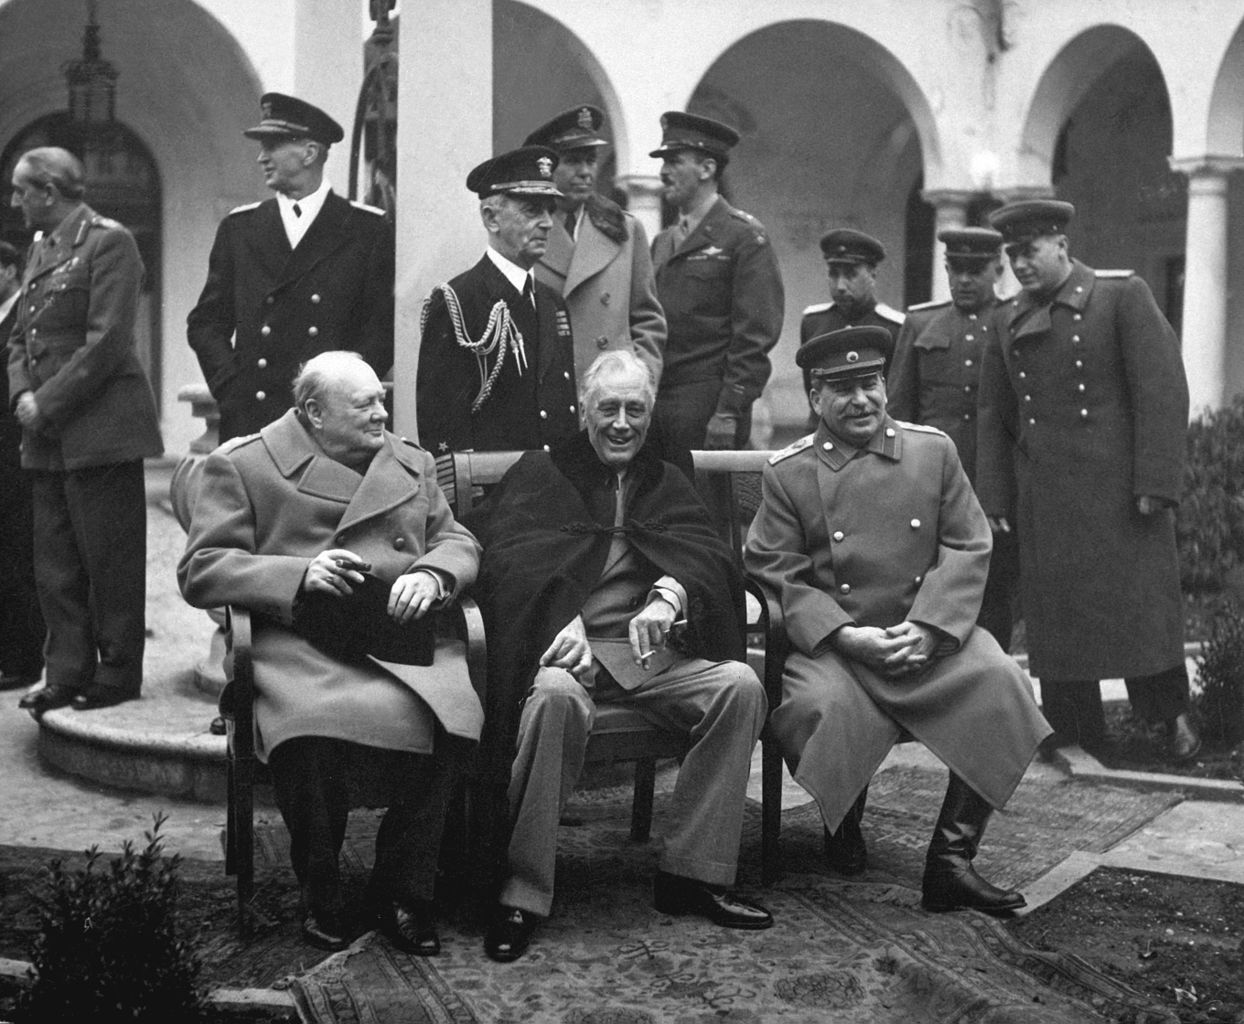 1244px-Yalta_Conference_(Churchill,_Roosevelt,_Stalin)_(B&W).jpg